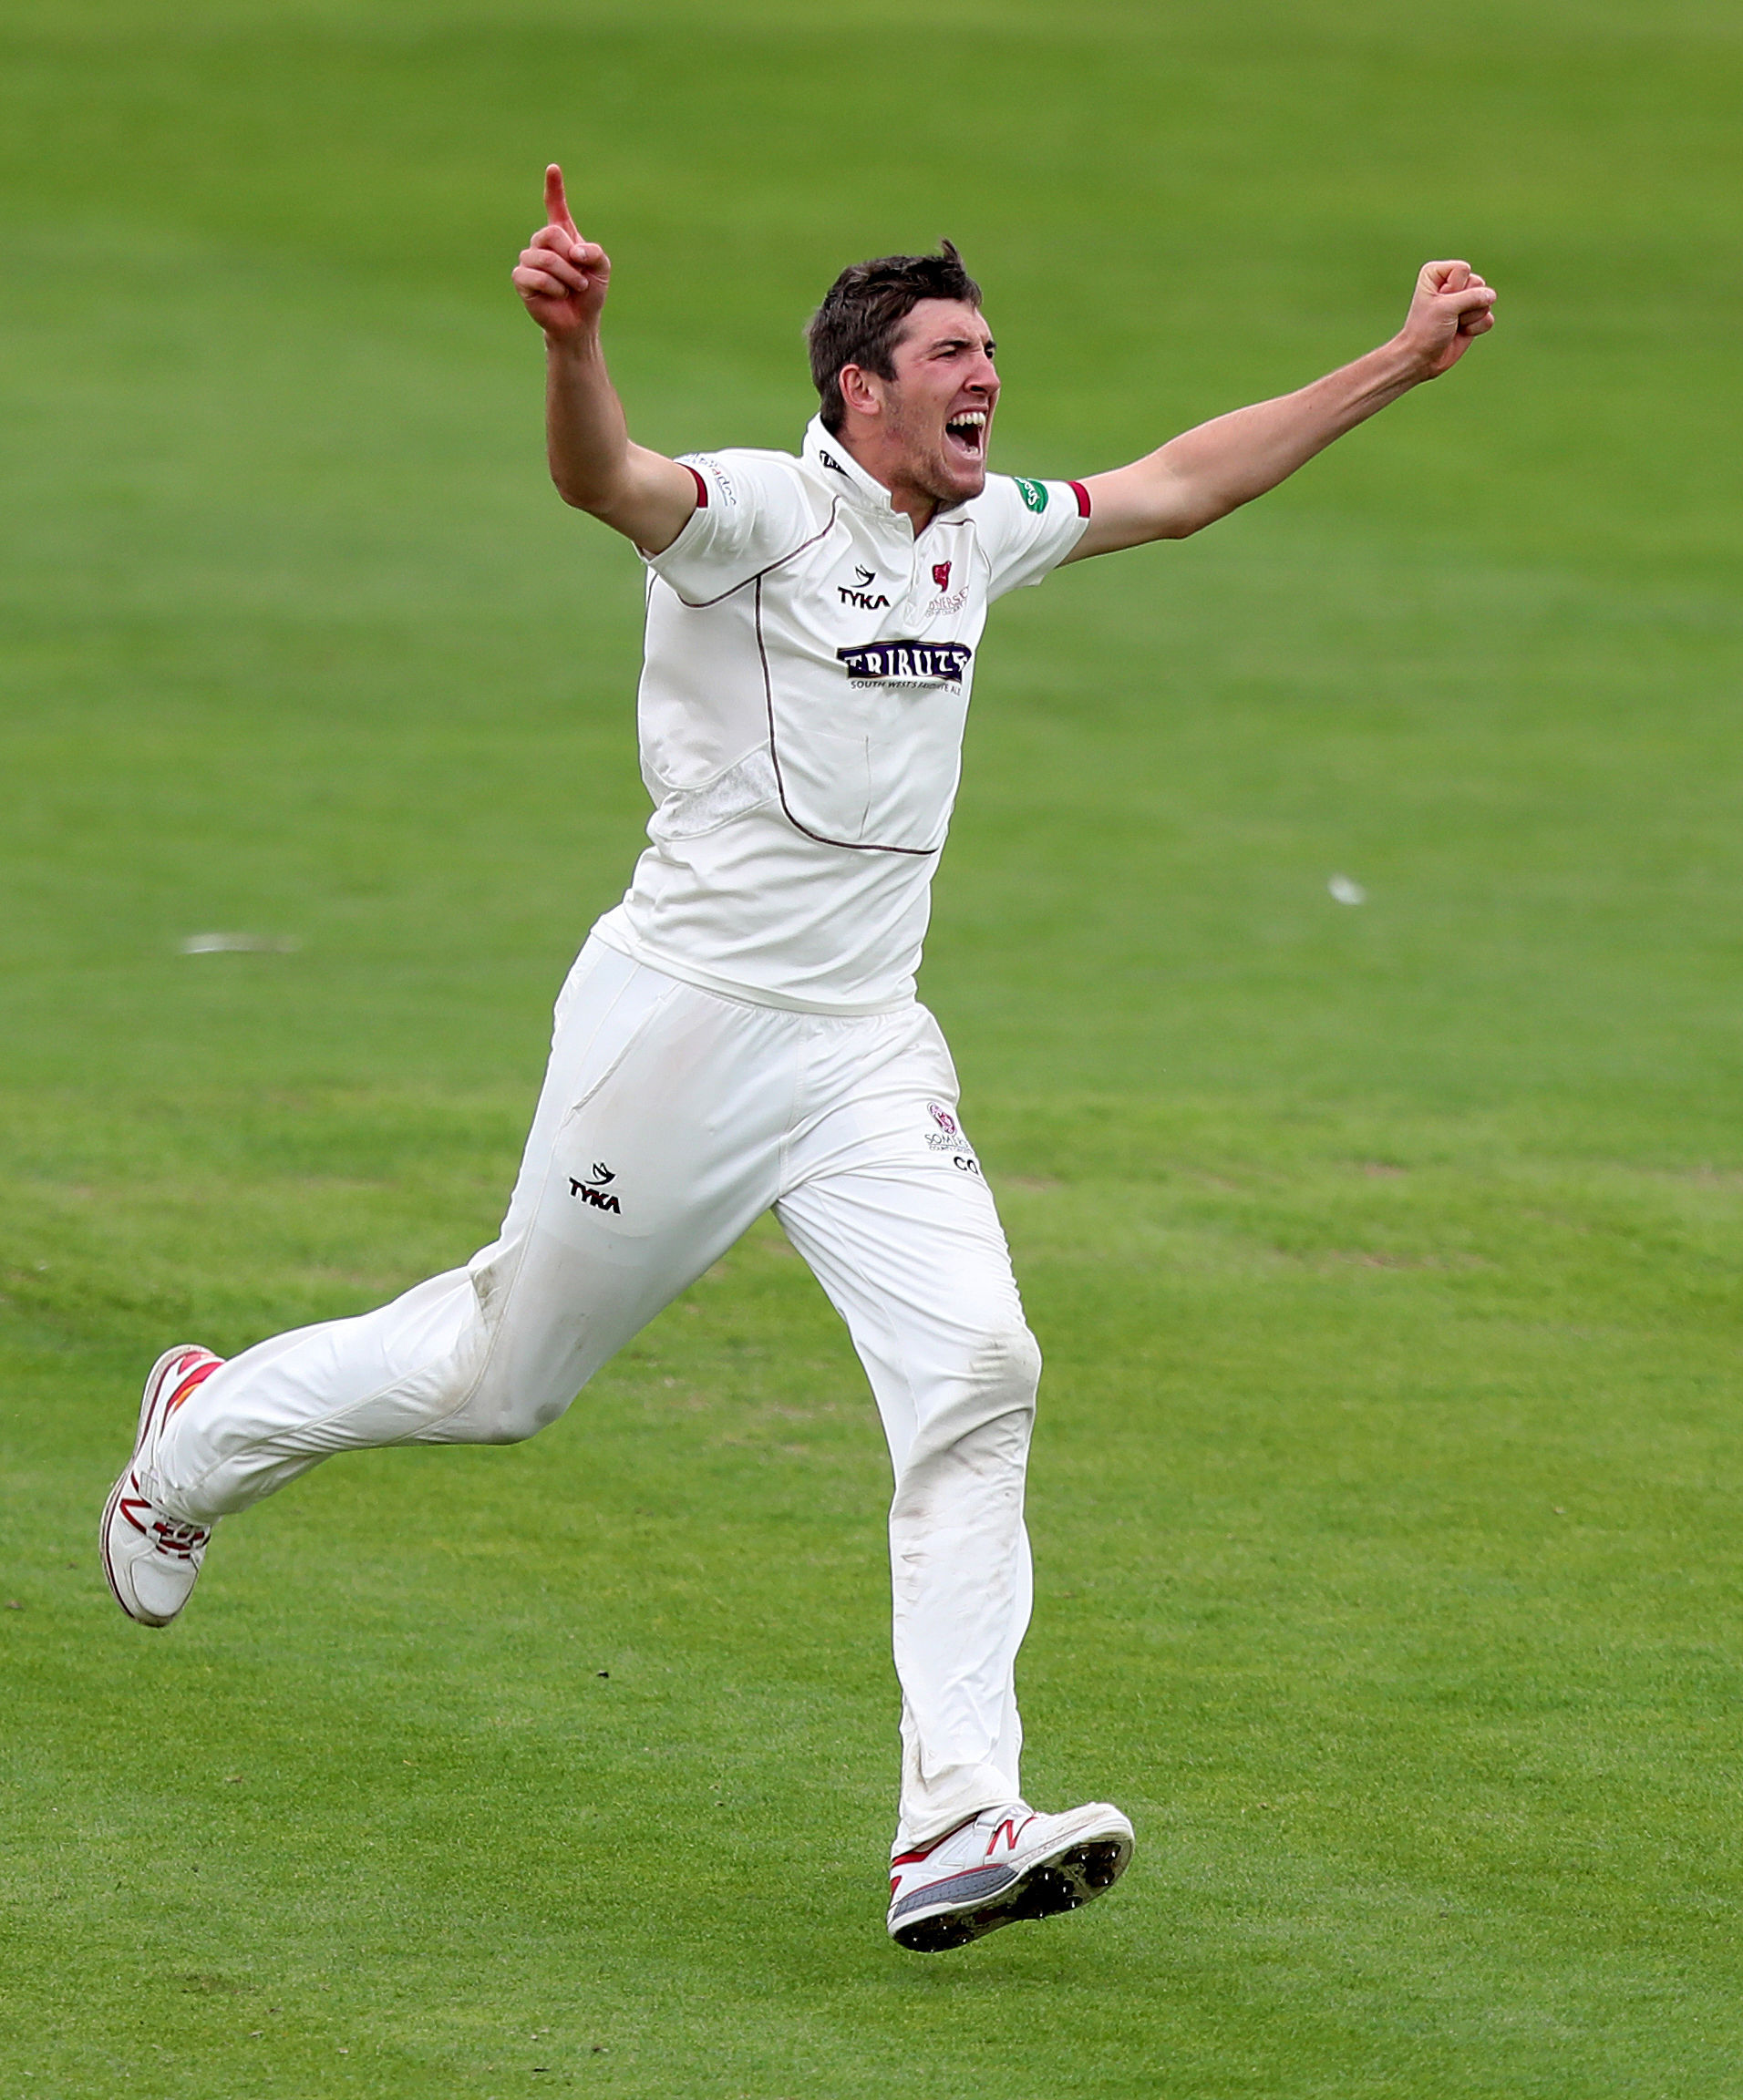 DELIGHT: Somerset rejoices as Craig Overton finally represents England, in the second Ashes Test. Pic: PA Wire